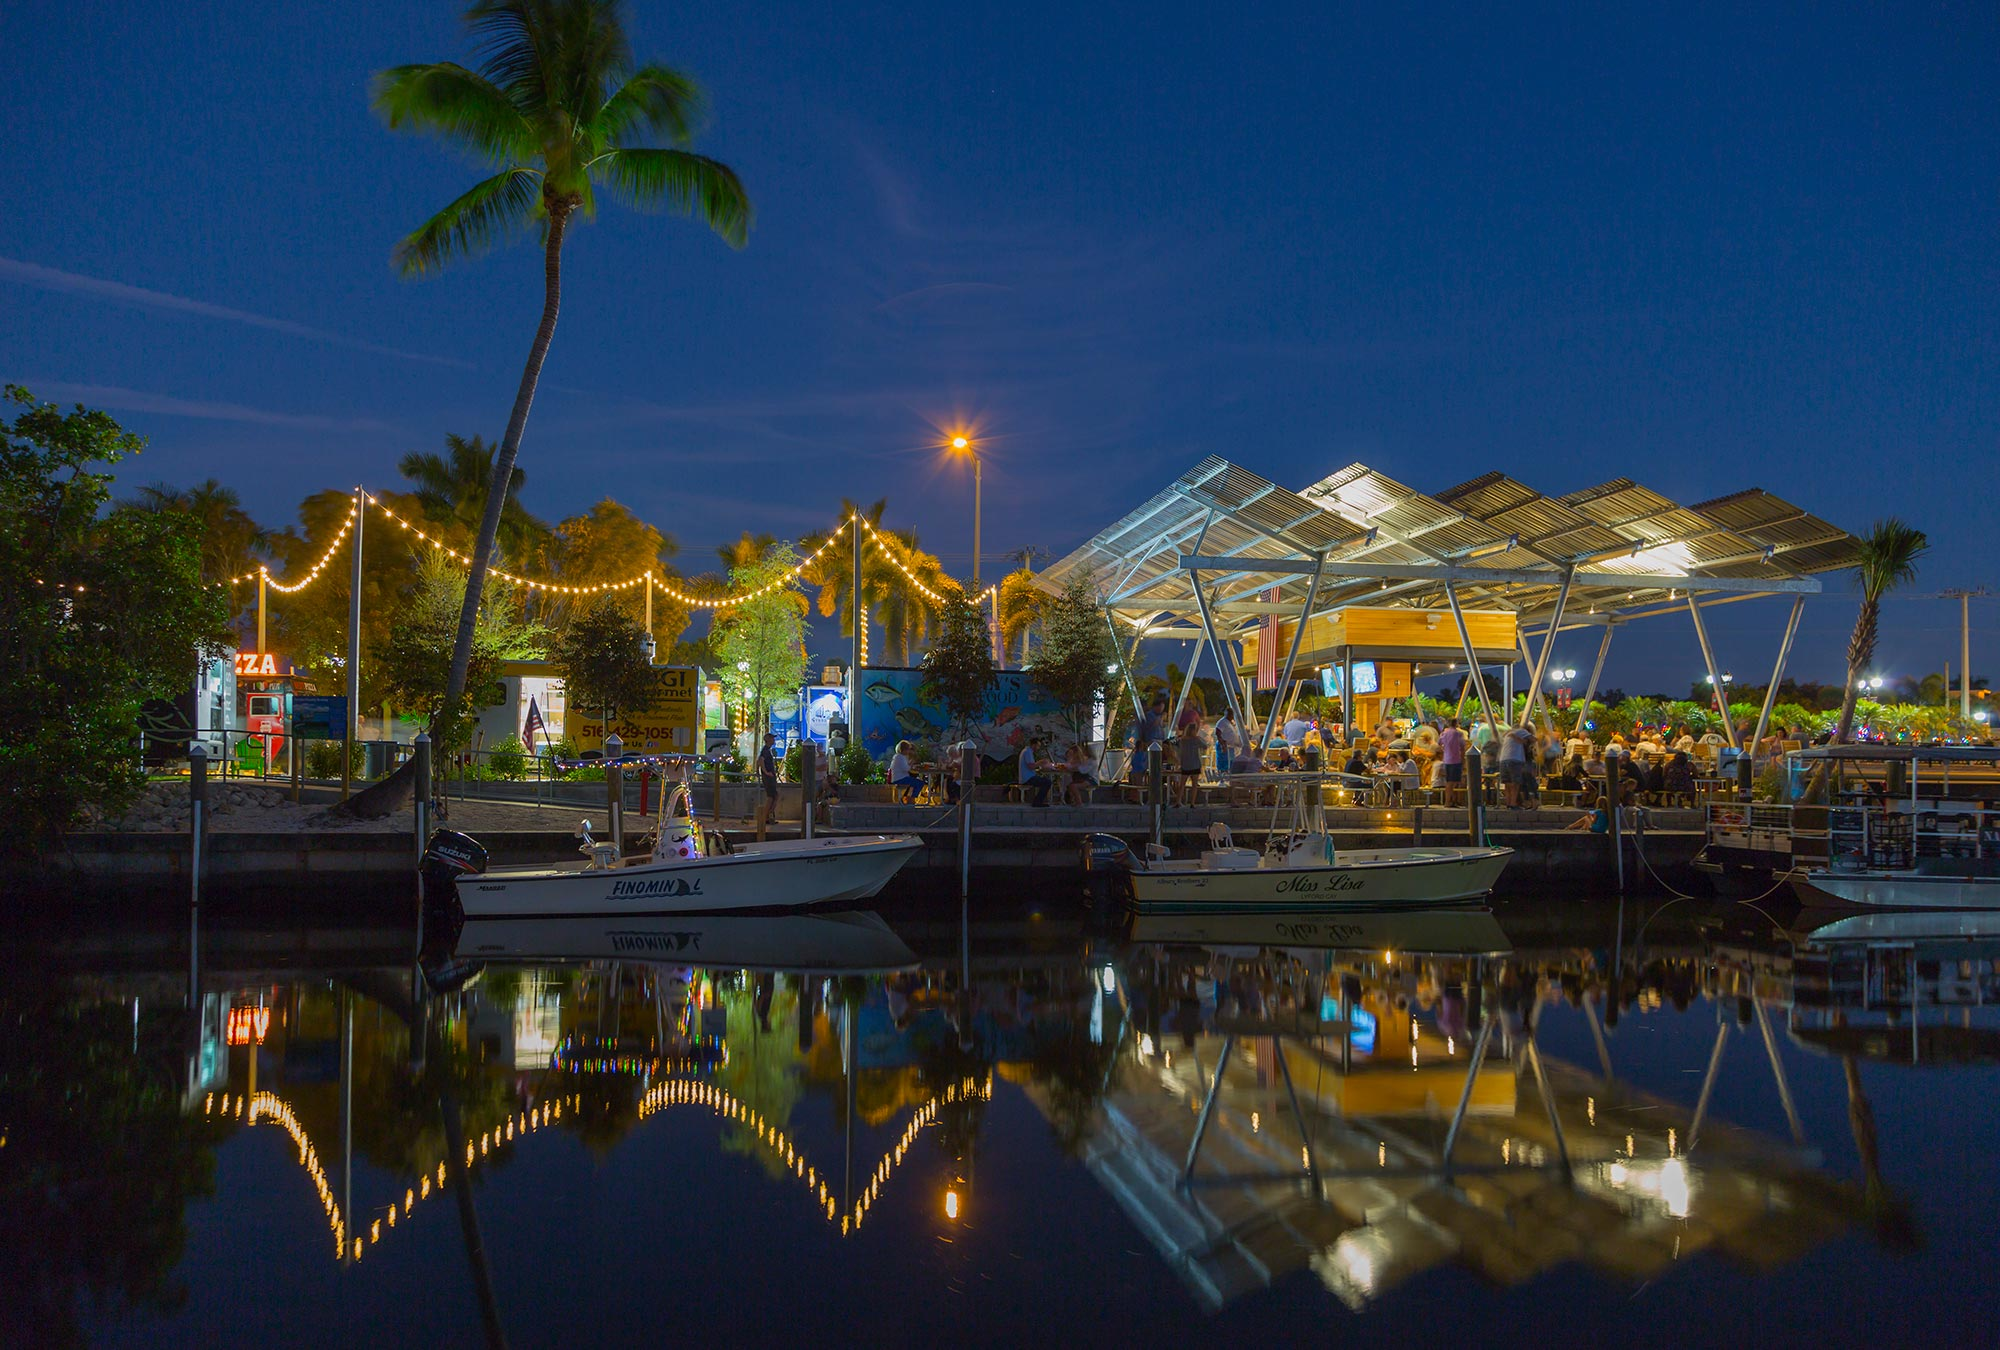 Food truck park from across the water at night.